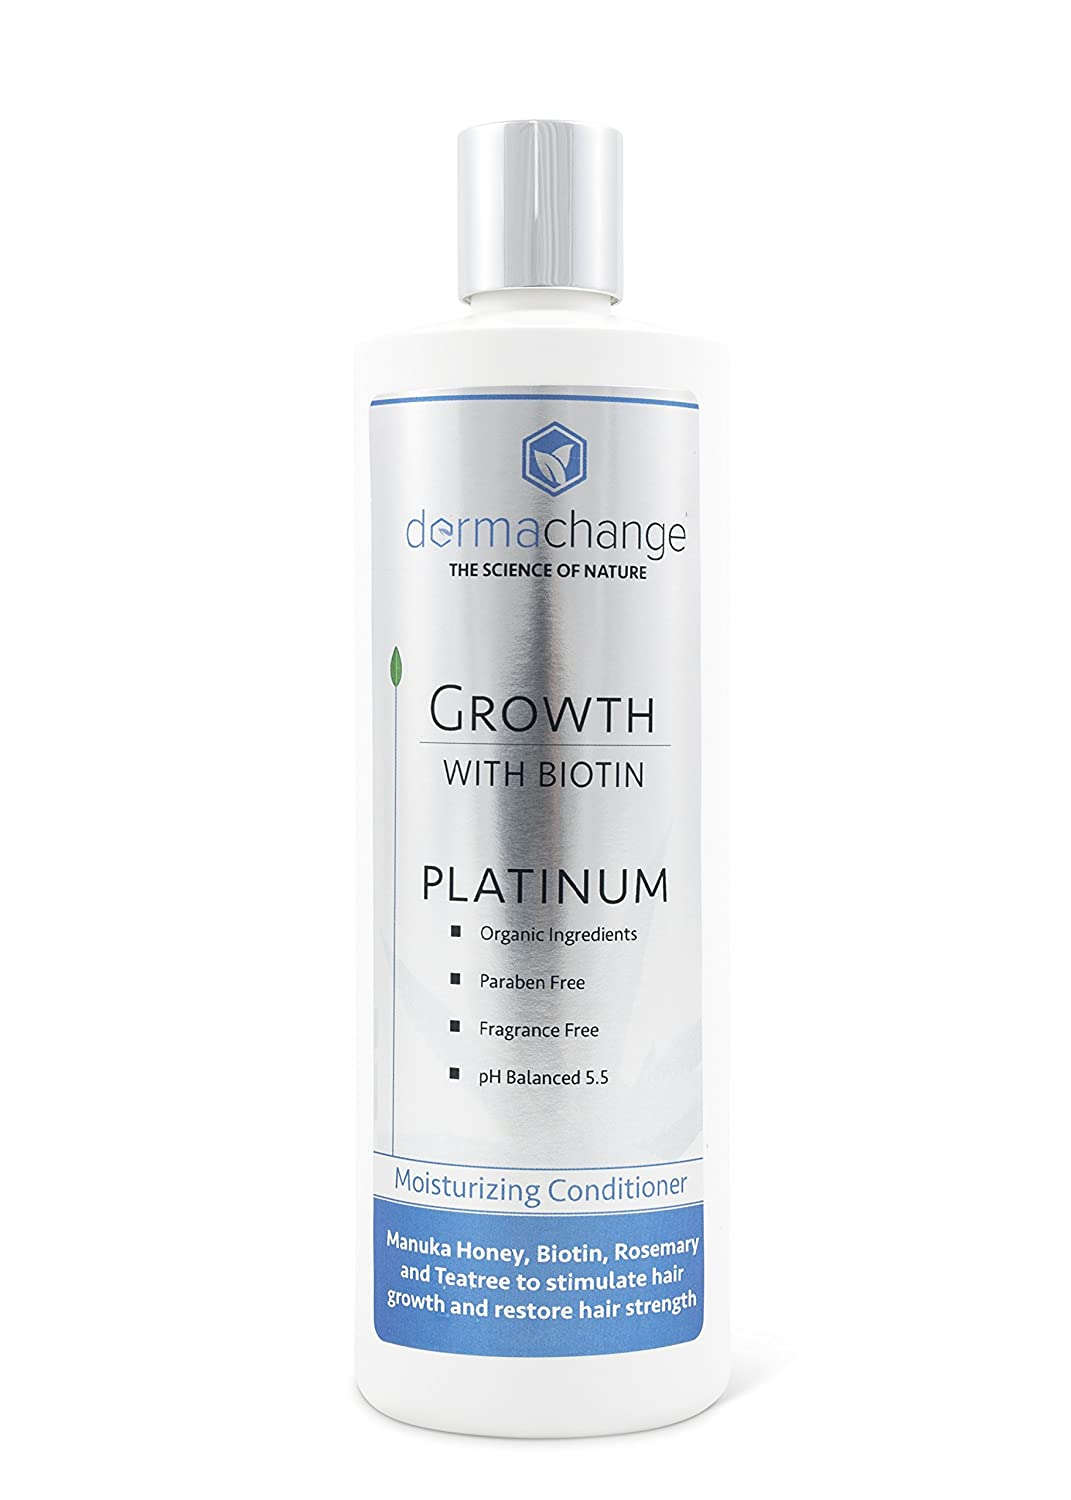 DermaChange Platinum Hair Growth Conditioner | Best natural hair growth products 2018 reviews & guide